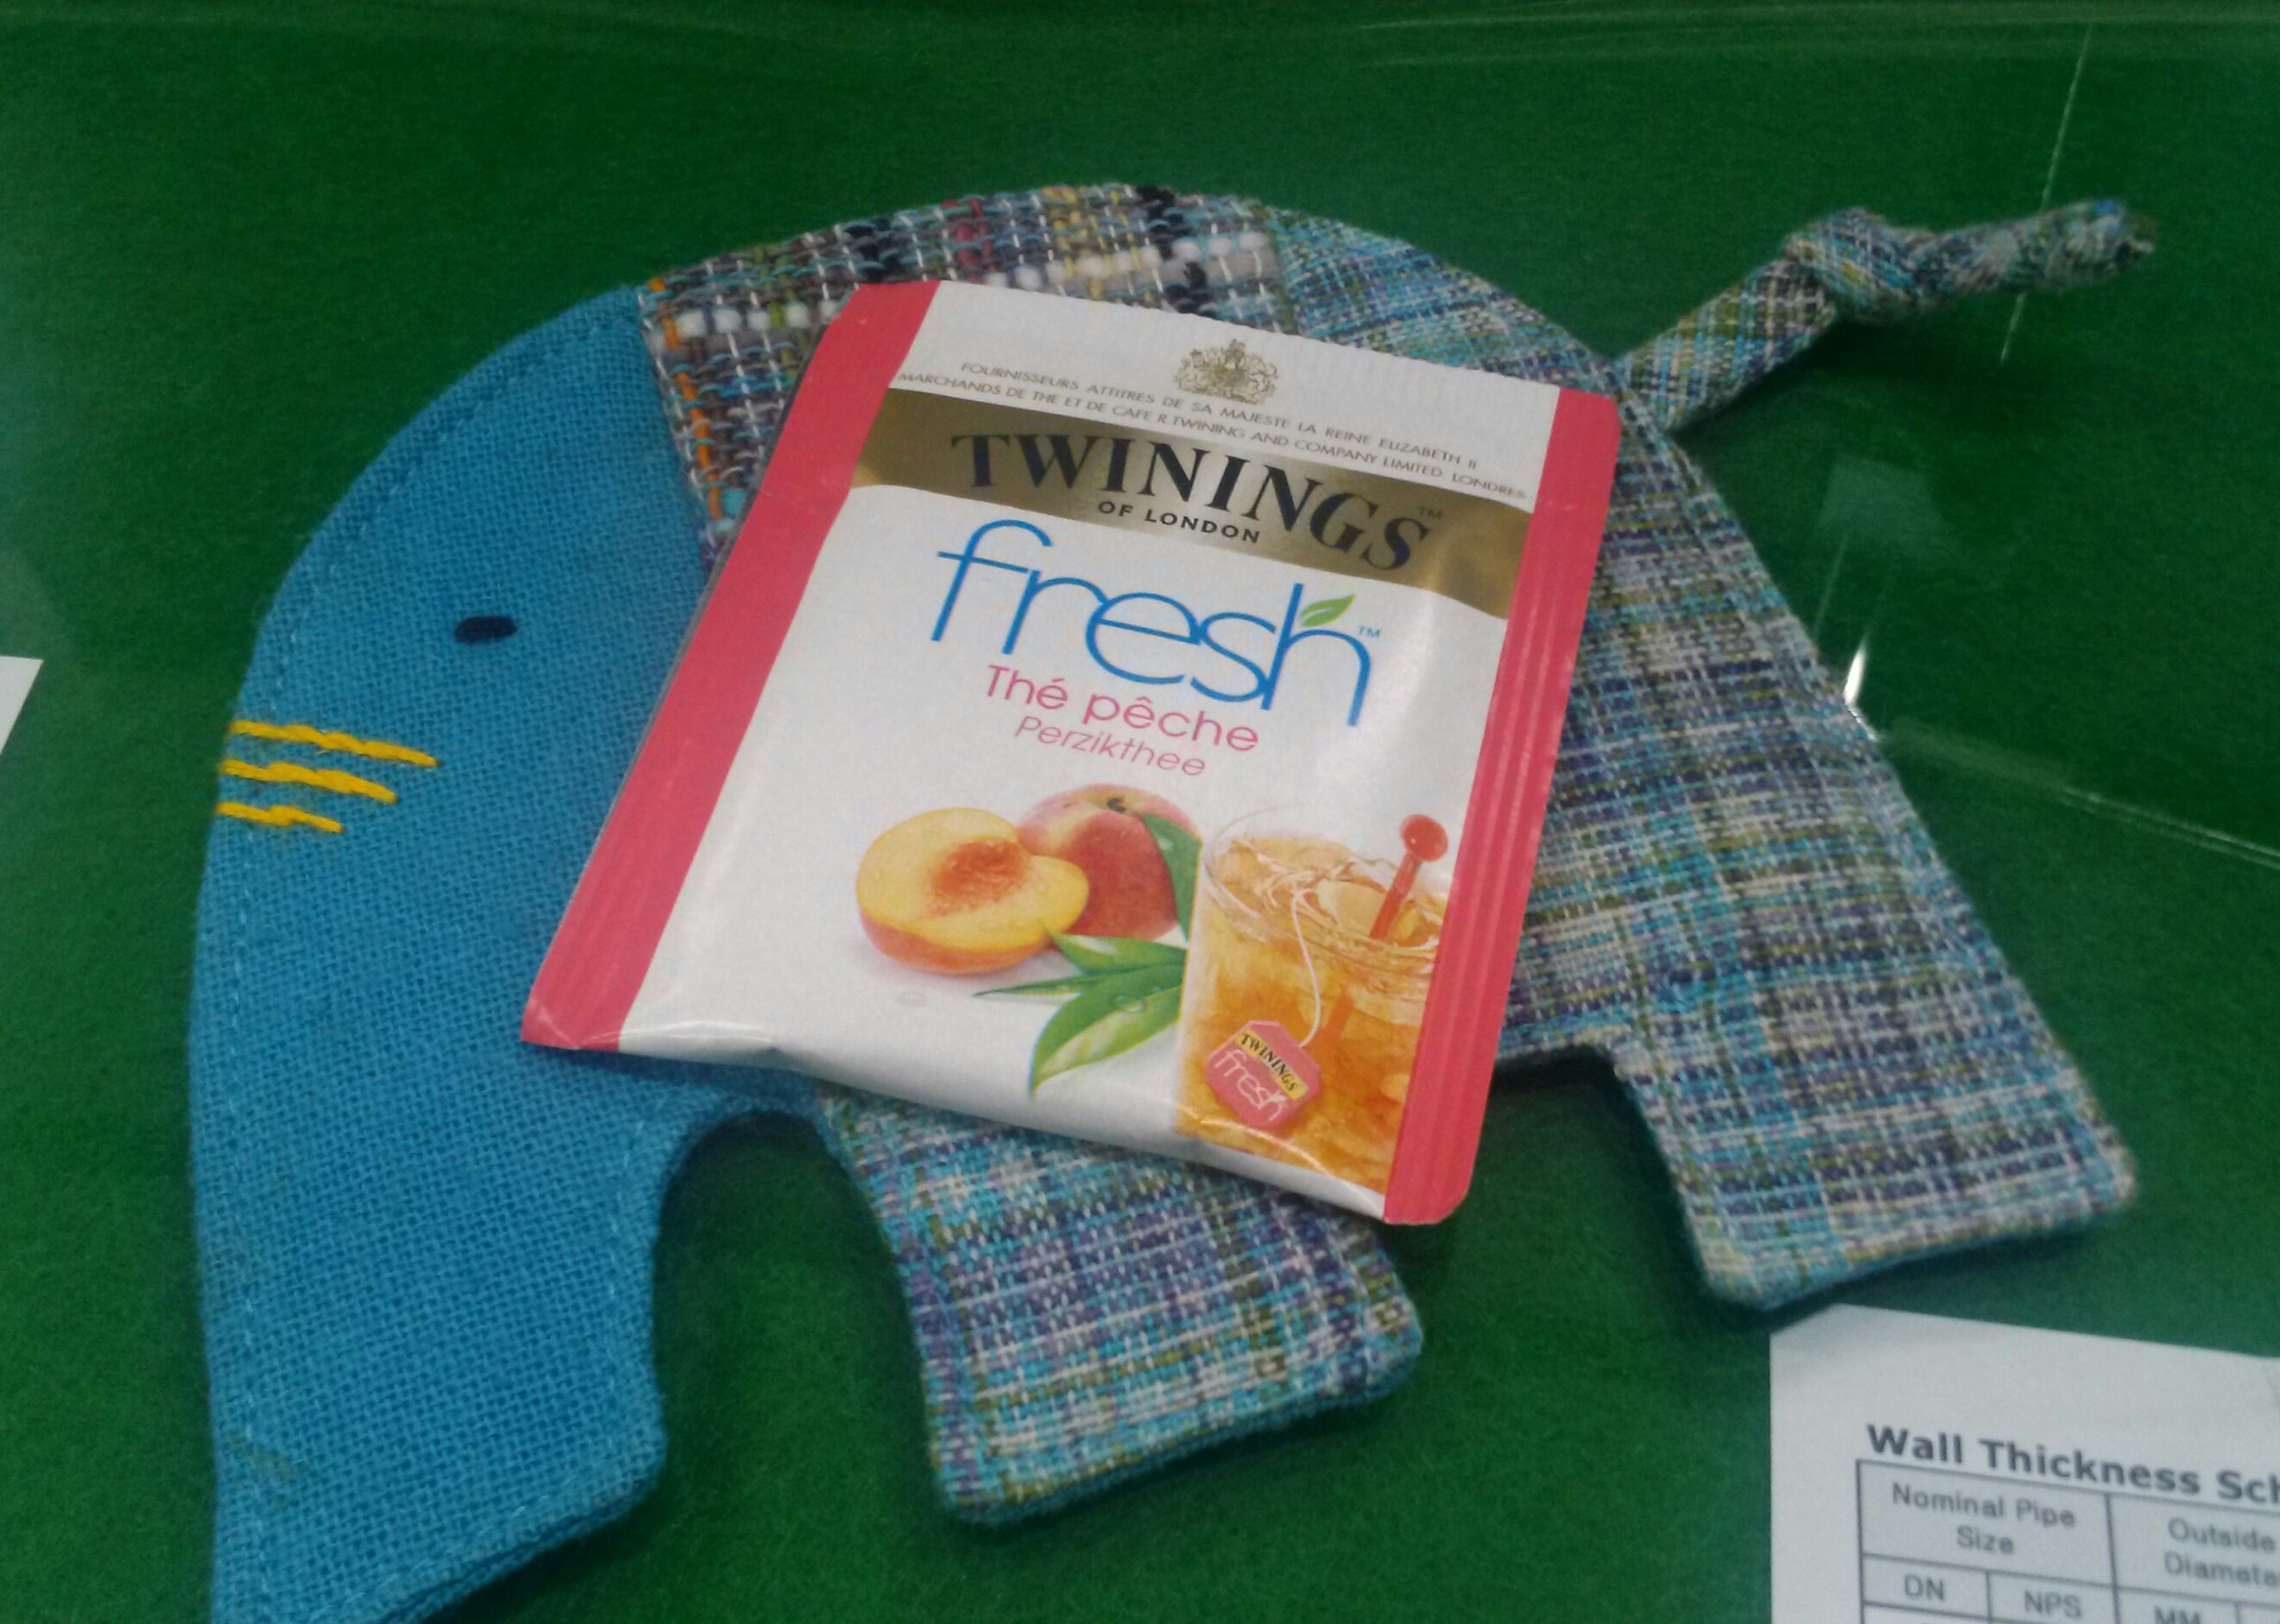 TWININGS - fresh, The peche